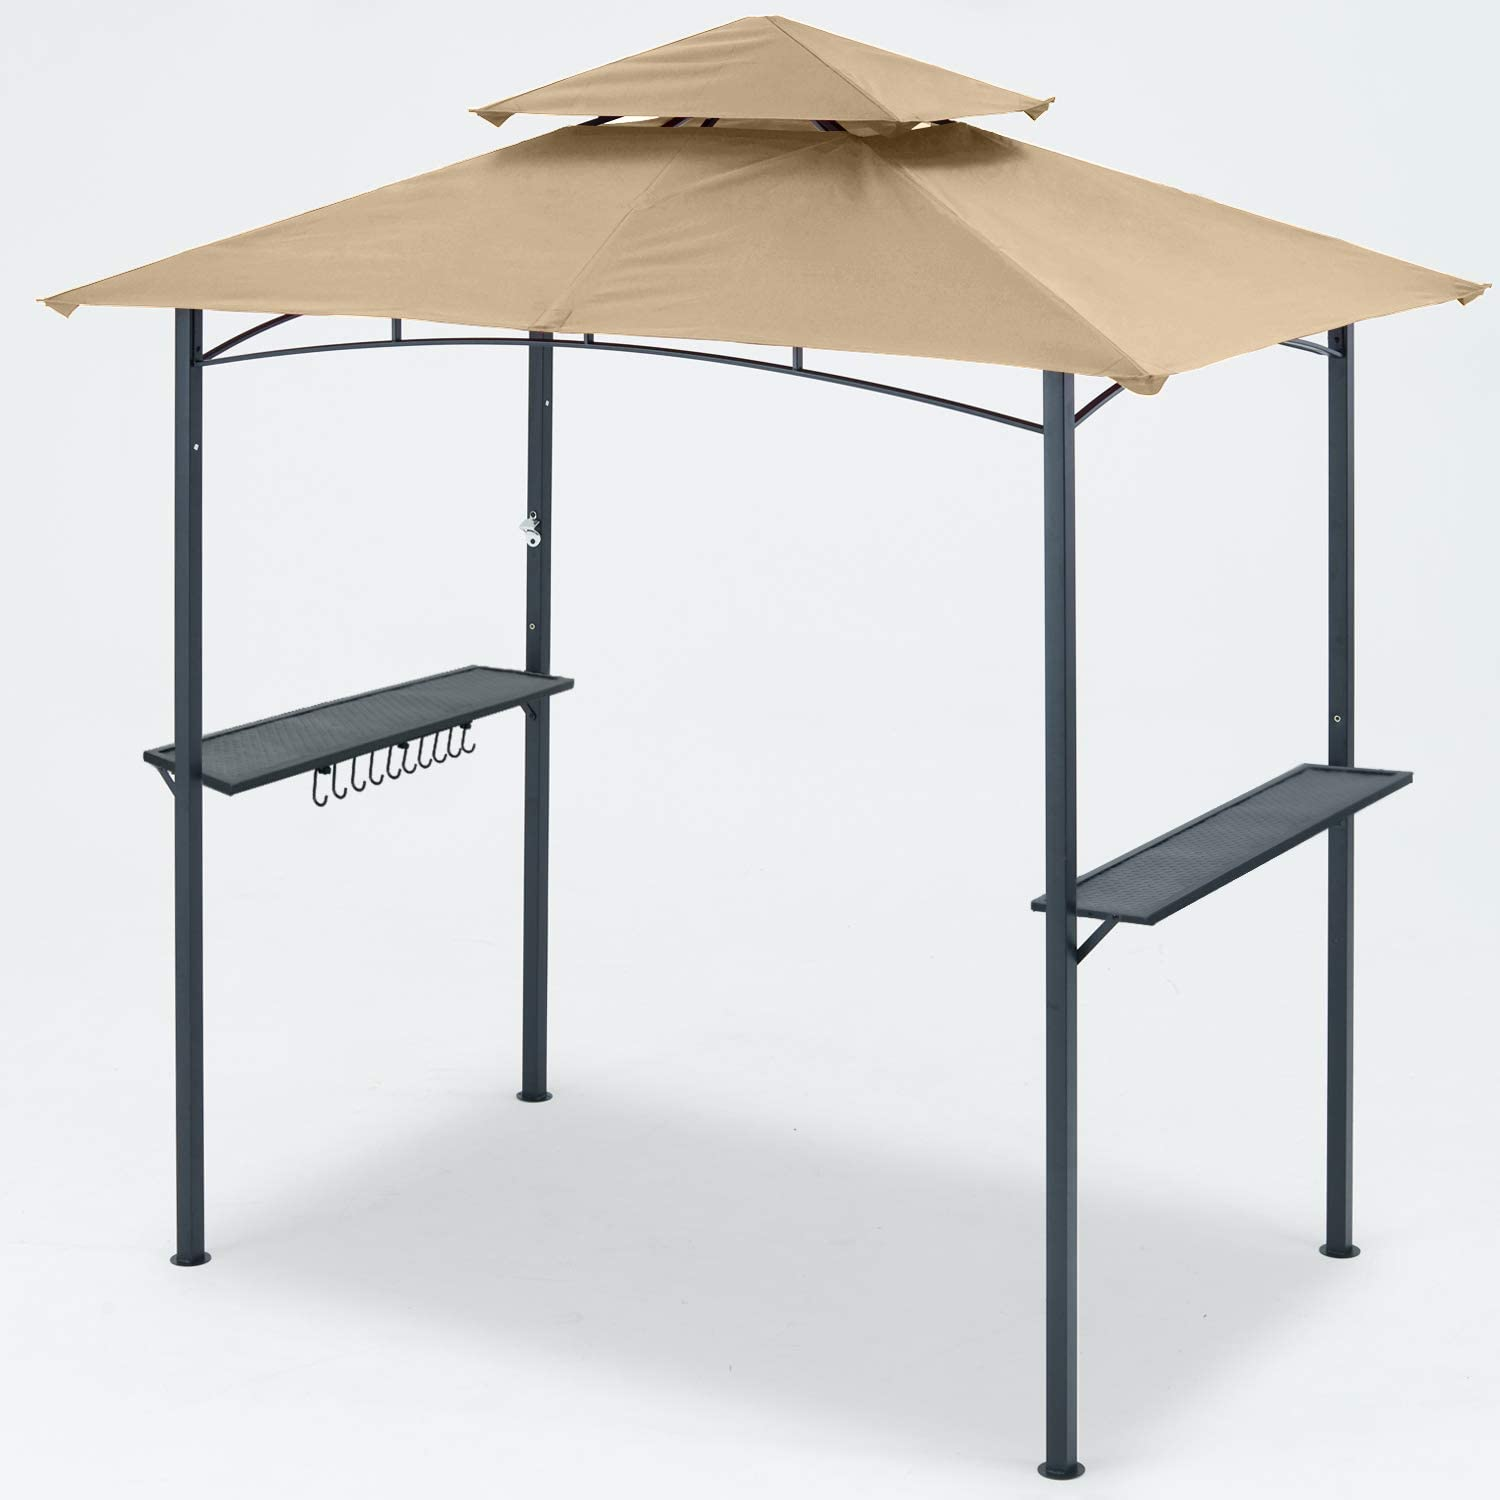 Brown MASTERCANOPY Grill Gazebo 8 x 5 Double Tiered Outdoor BBQ Gazebo Canopy with LED Light